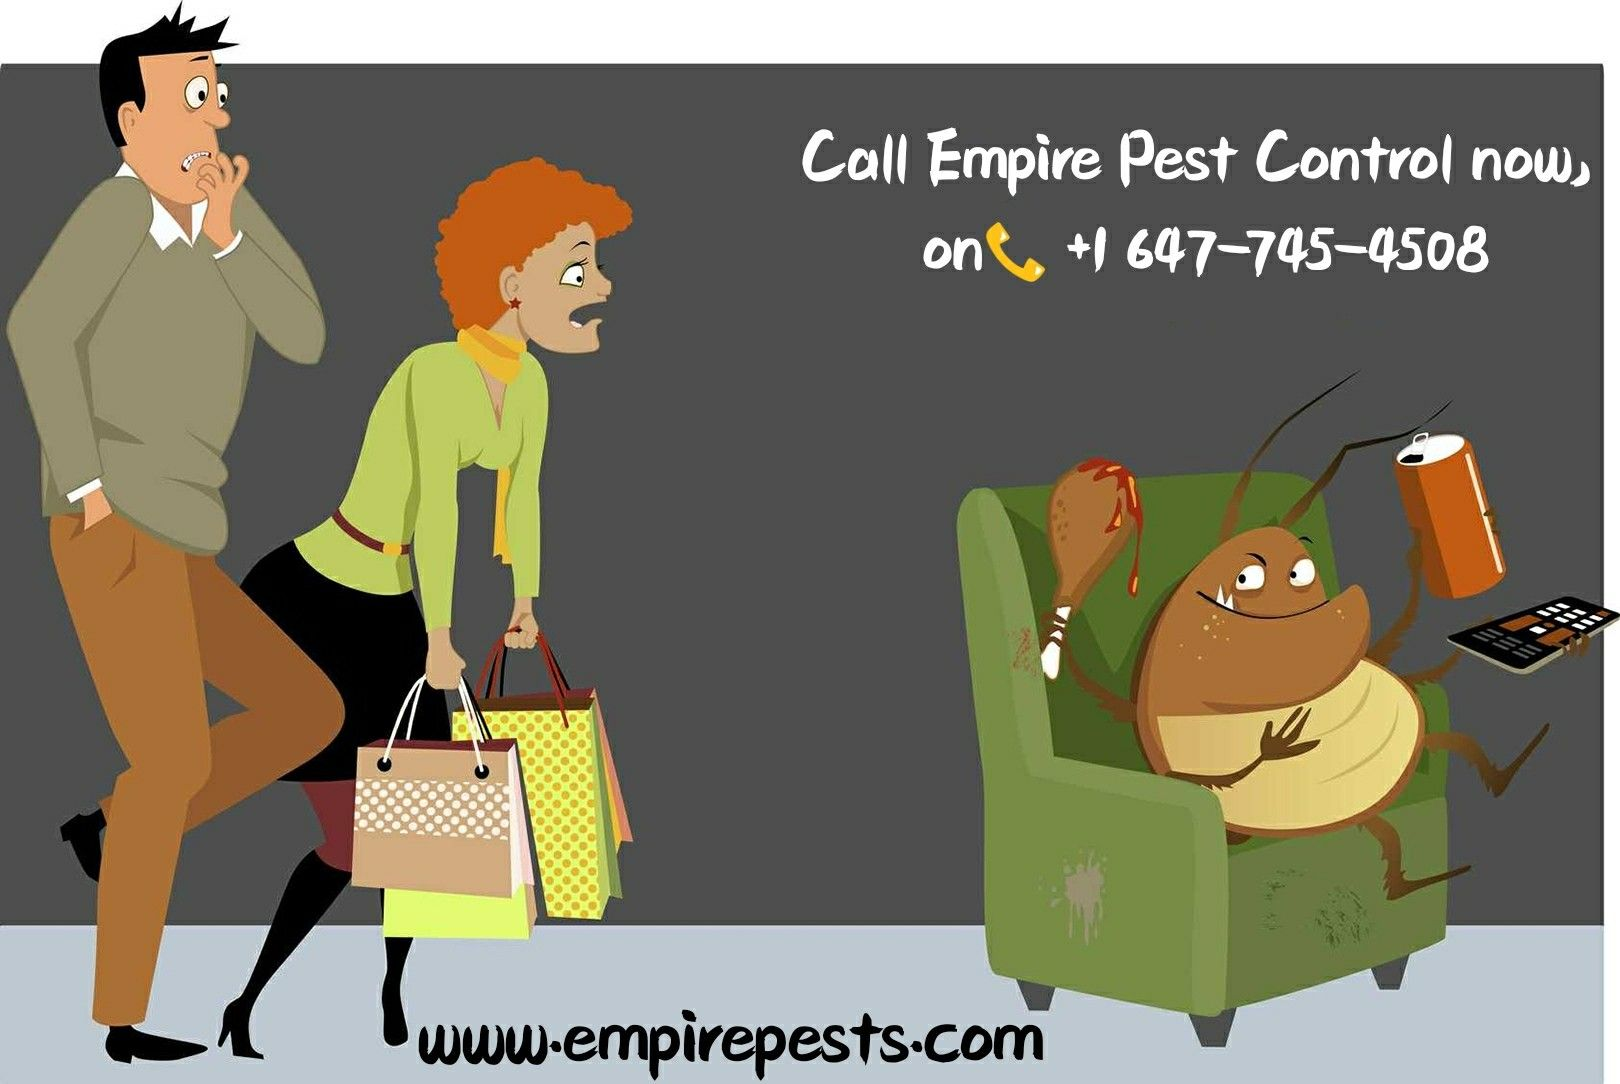 Empire Pest Control is a family run friendly pest control